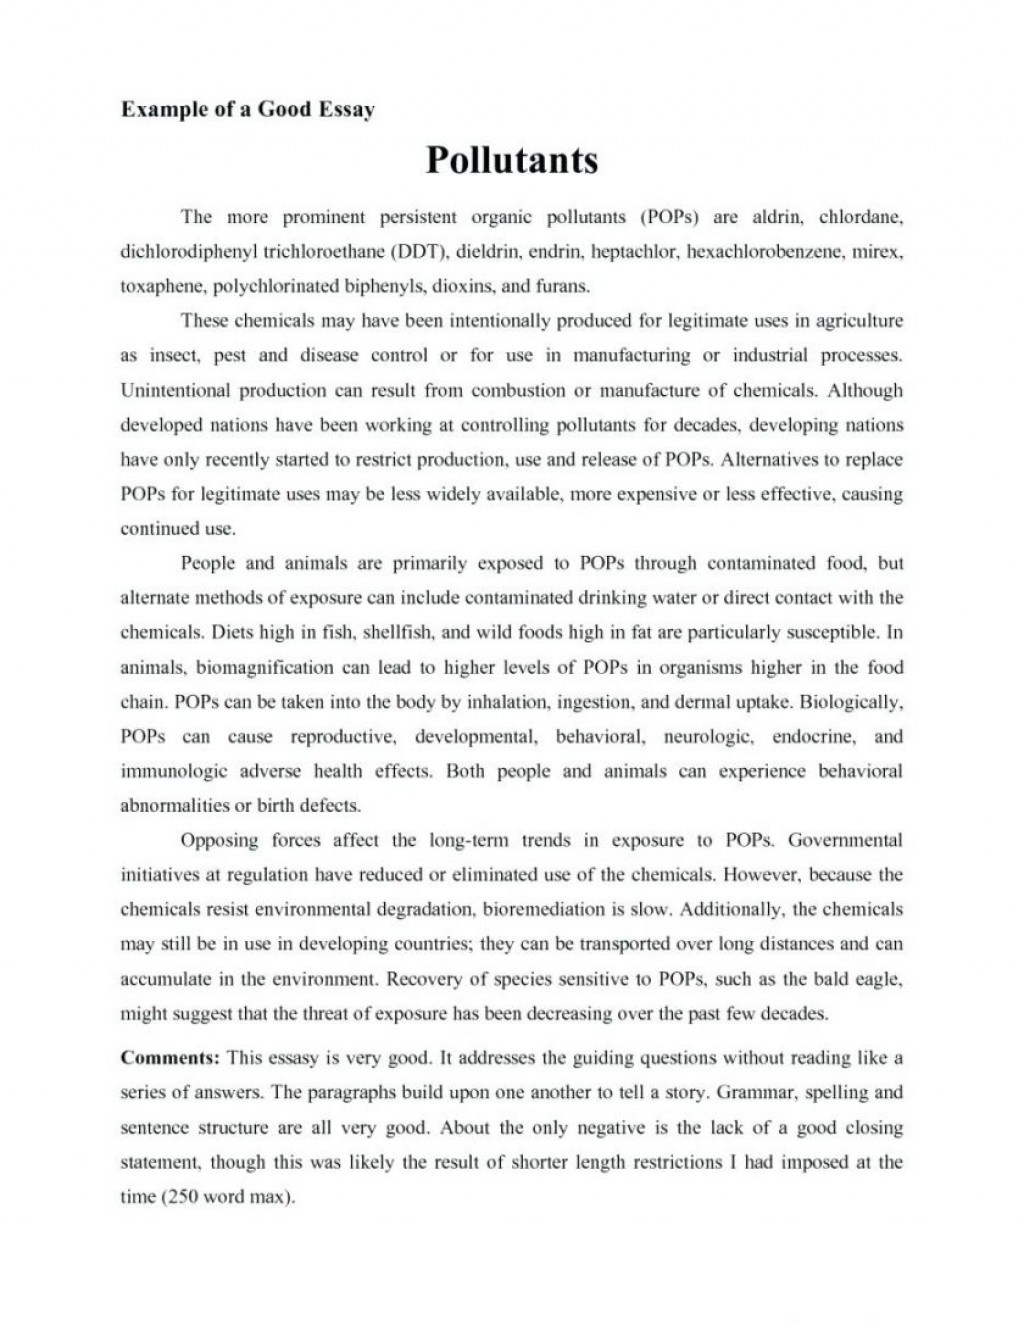 012 Business Topics For Research Paper Examples Of Good Essay How To Write College Easy About Questio Descriptive Informative Synthesissuasive Narrative Awful Administration Franchises Large